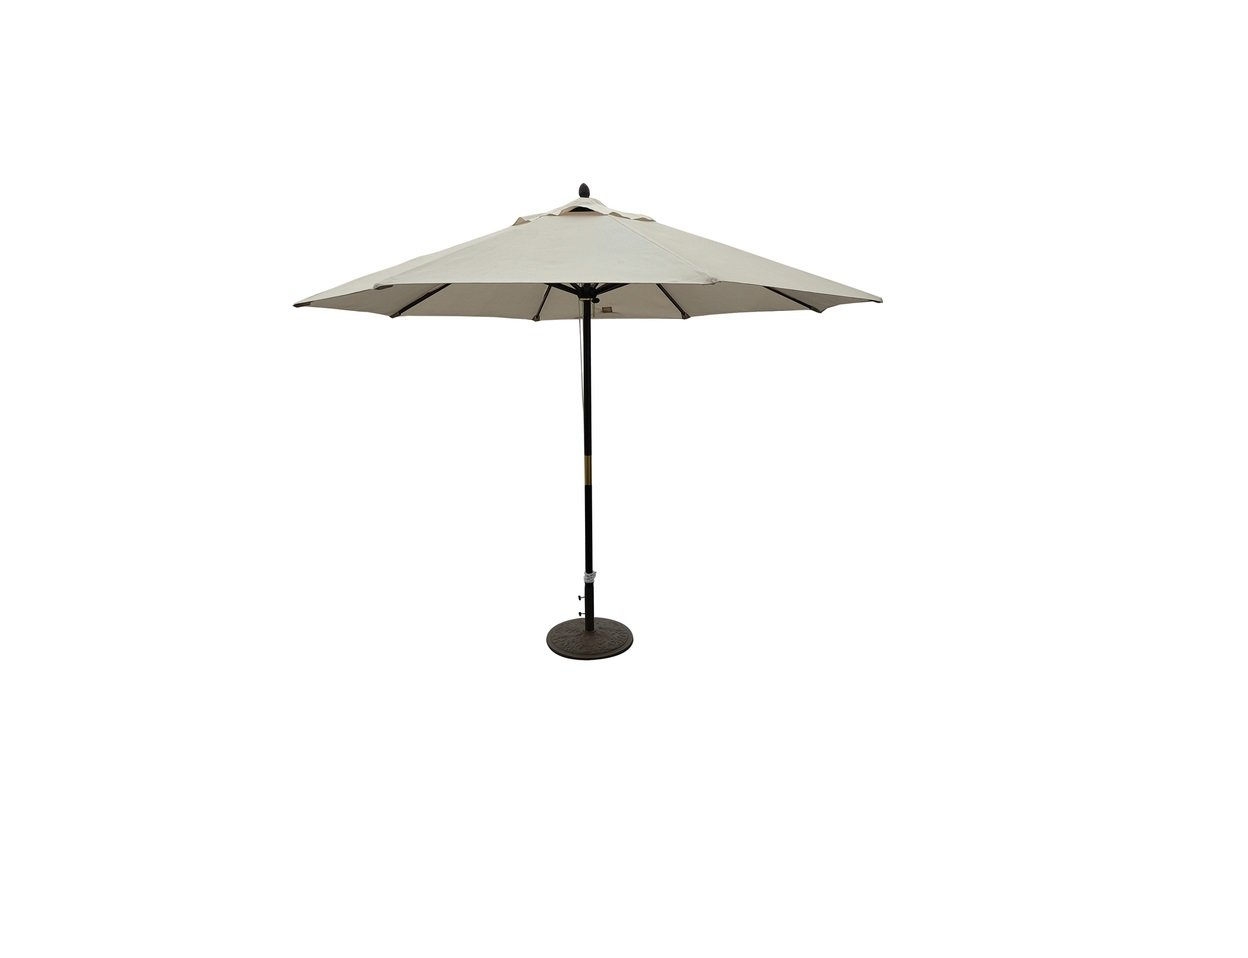 This 11-foot Outdoor Patio Market Umbrella Will Keep You Cool and Protected From the Sun. It Has a Solid Wooden Pole for Long-lasting Performance, Thread Coupling, and Includes a Premium Olefin Cover and Weather Resistant. - Pole Color: Dark woodShade, Color: Medium Beige Materials: Wood, olefin cover, pineapple finial 4 pulley lift system - shades-parasols, patio-furniture, patio - 41kYTuG7lzL -